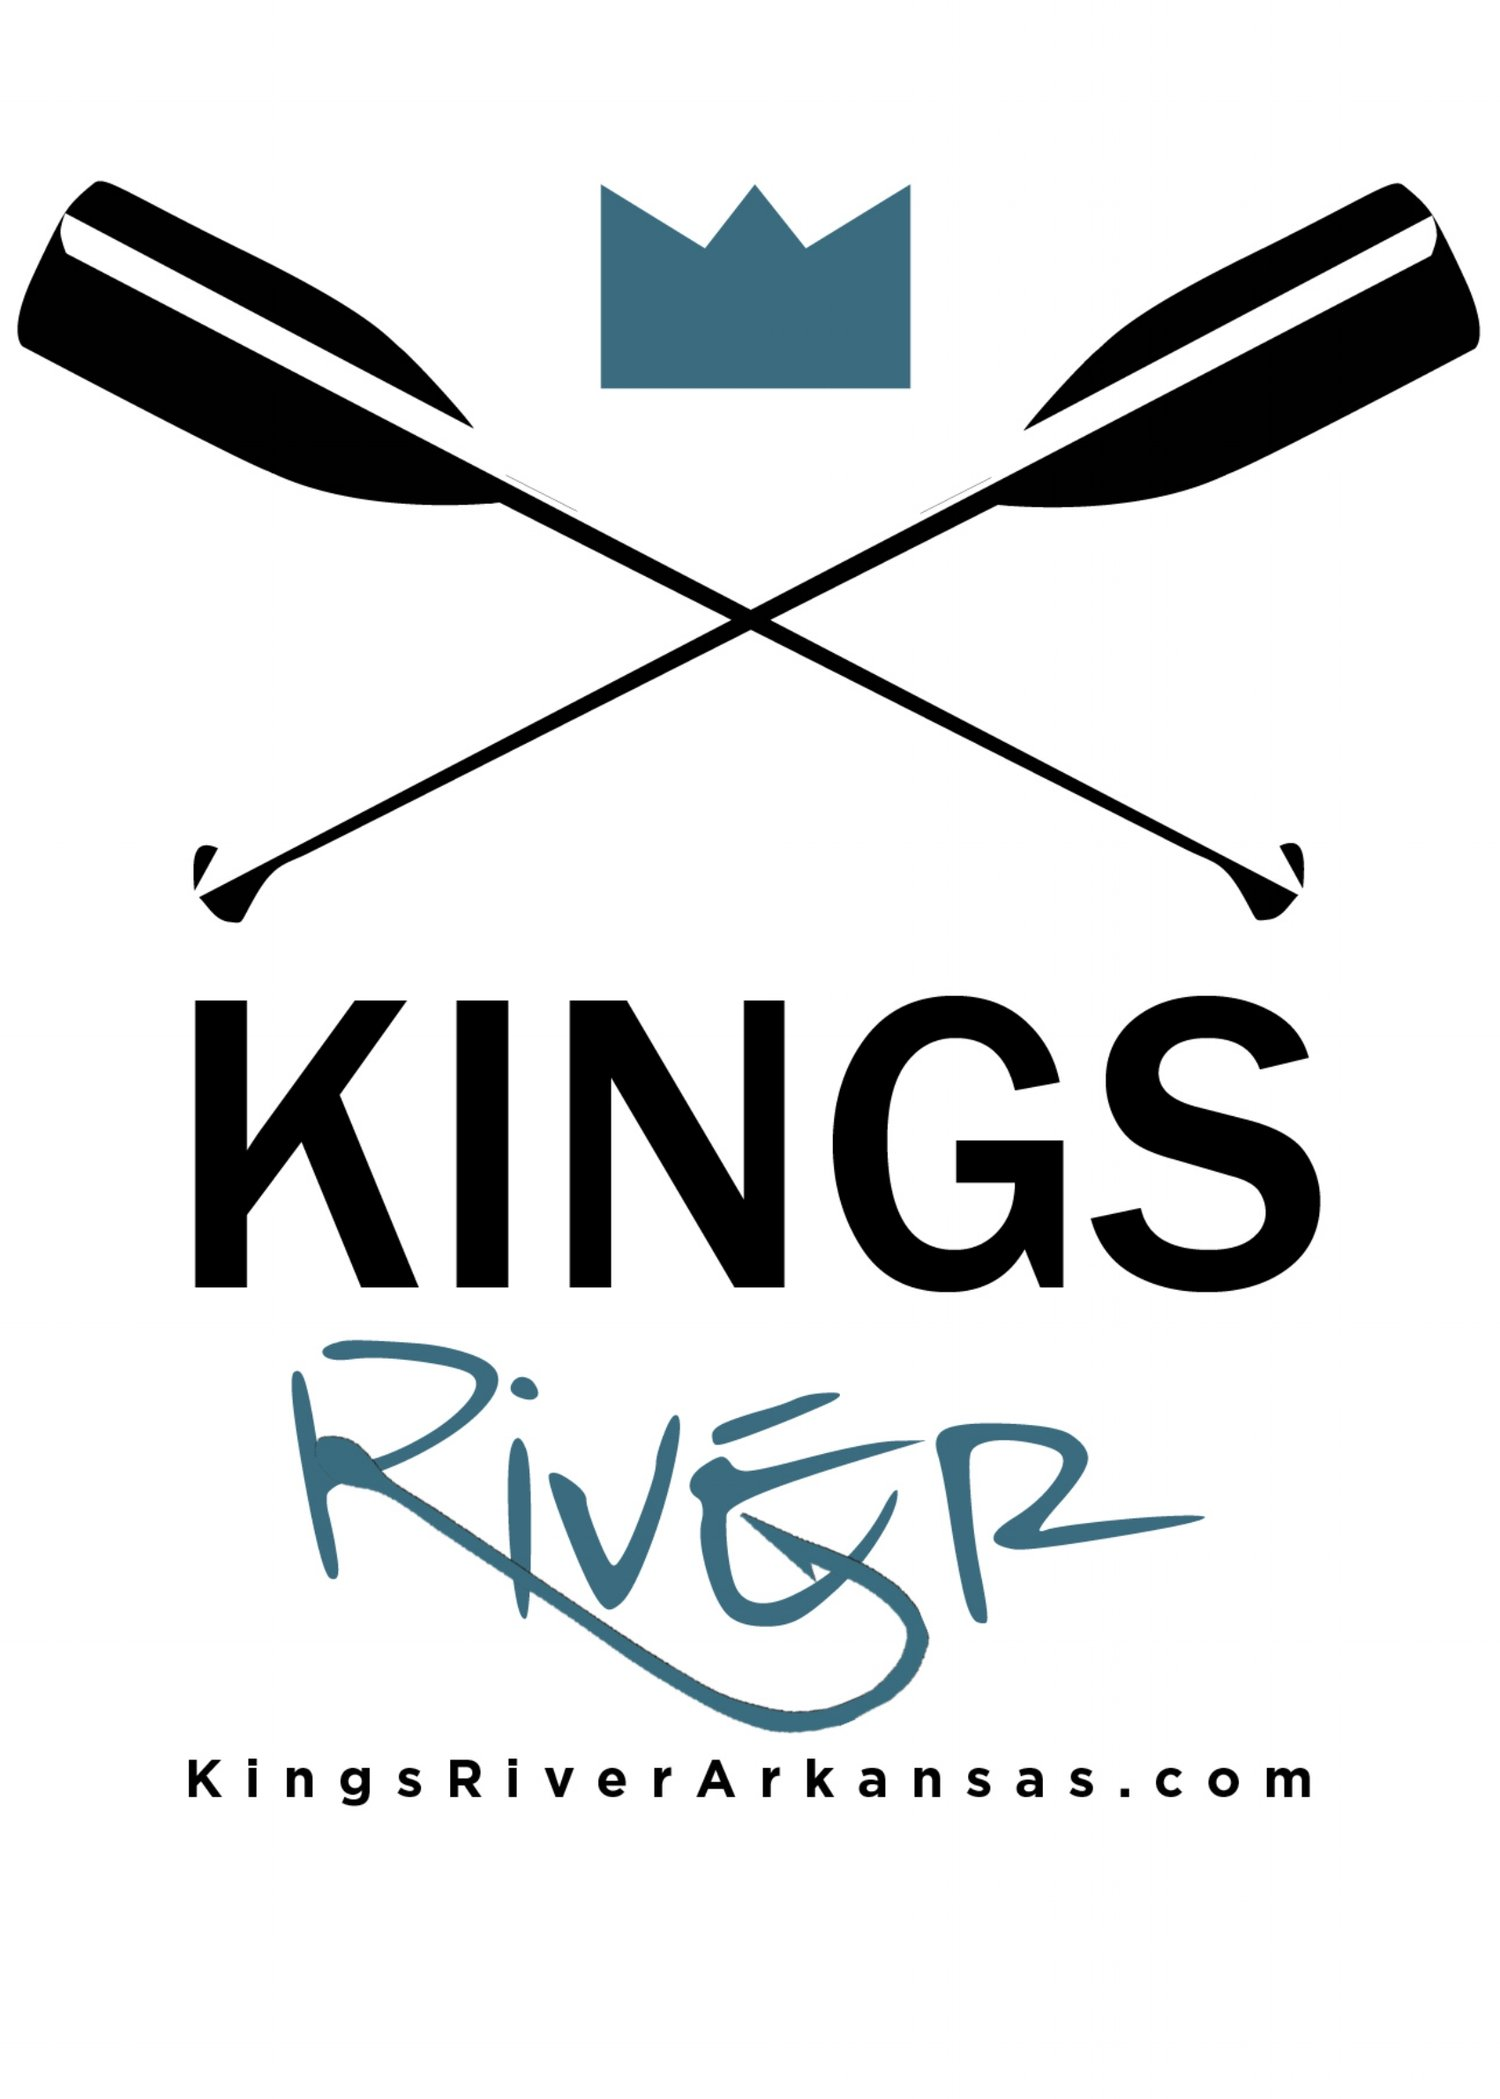 Kings River, Arkansas